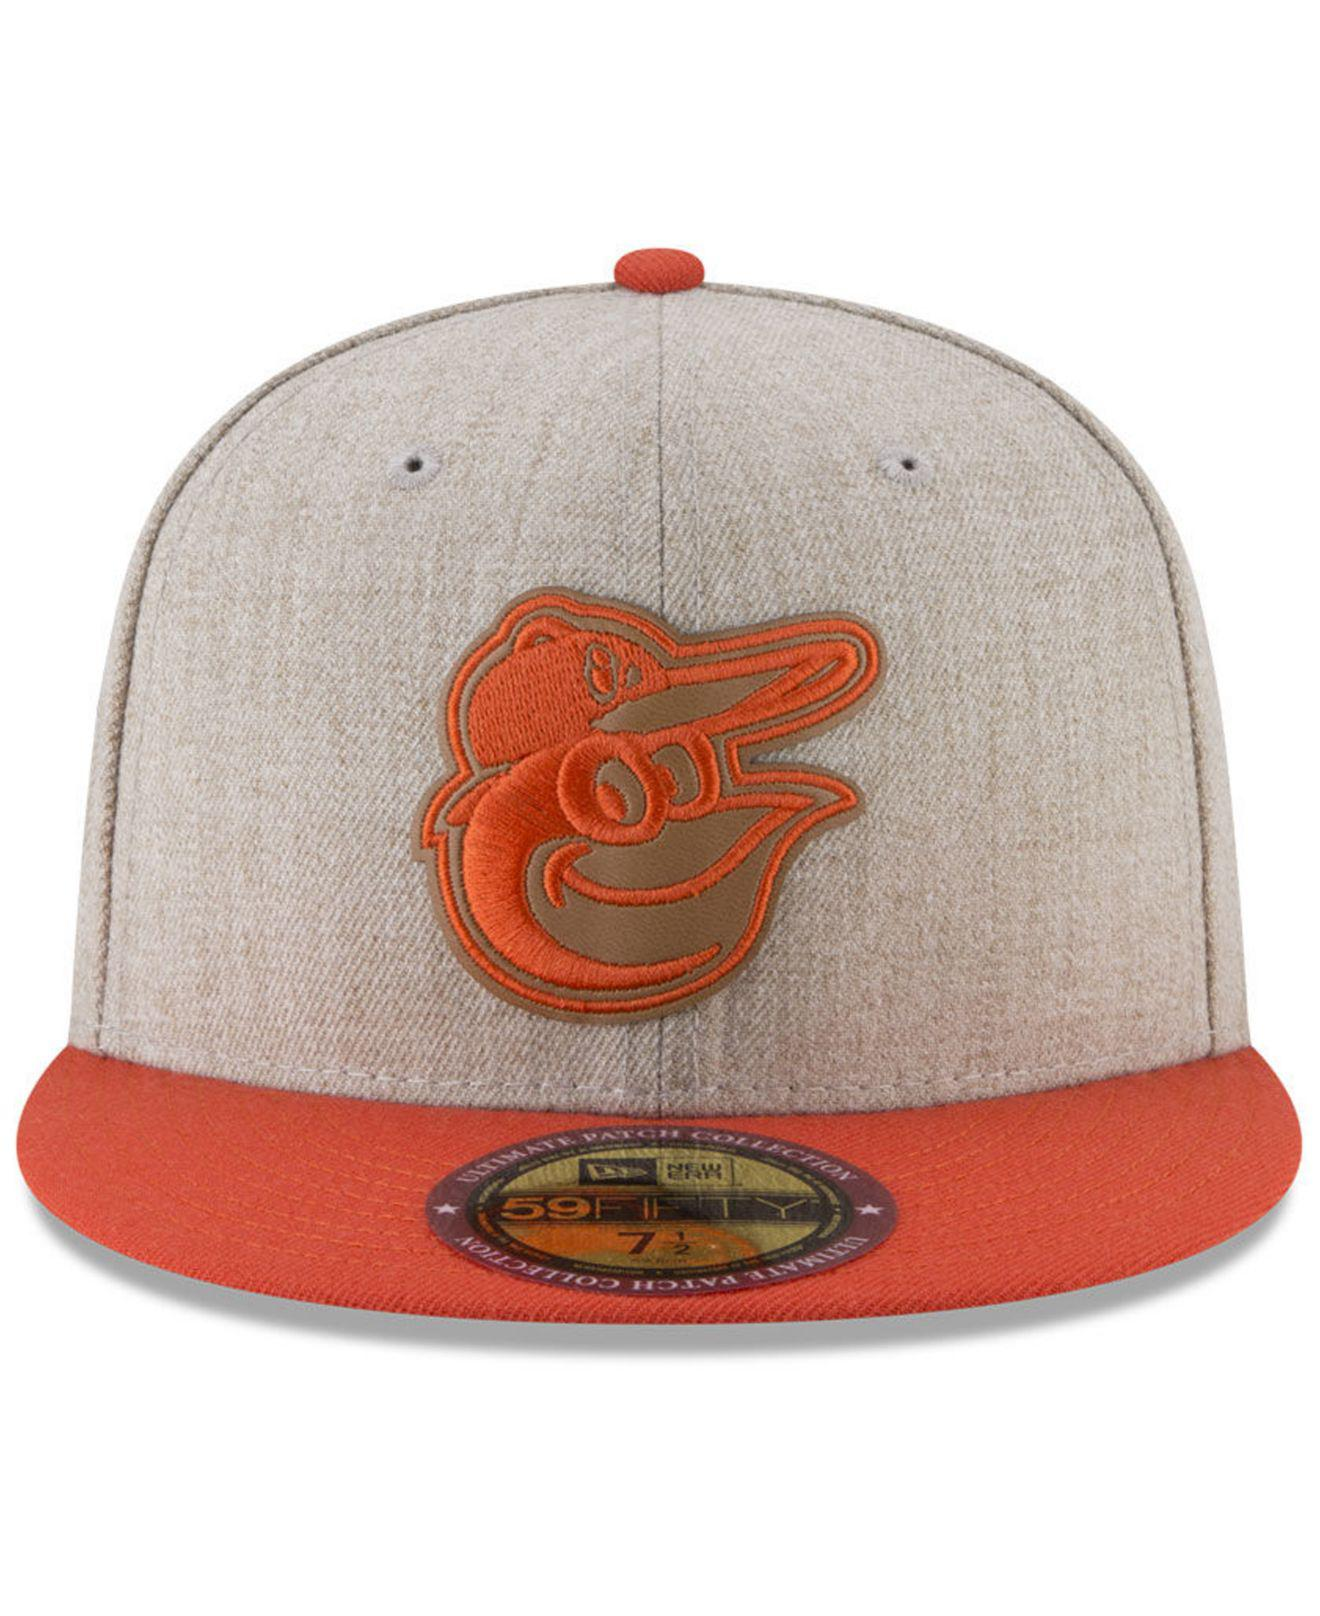 cf0f70a1417 Lyst - KTZ Baltimore Orioles Leather Ultimate Patch Collection 59fifty  Fitted Cap for Men